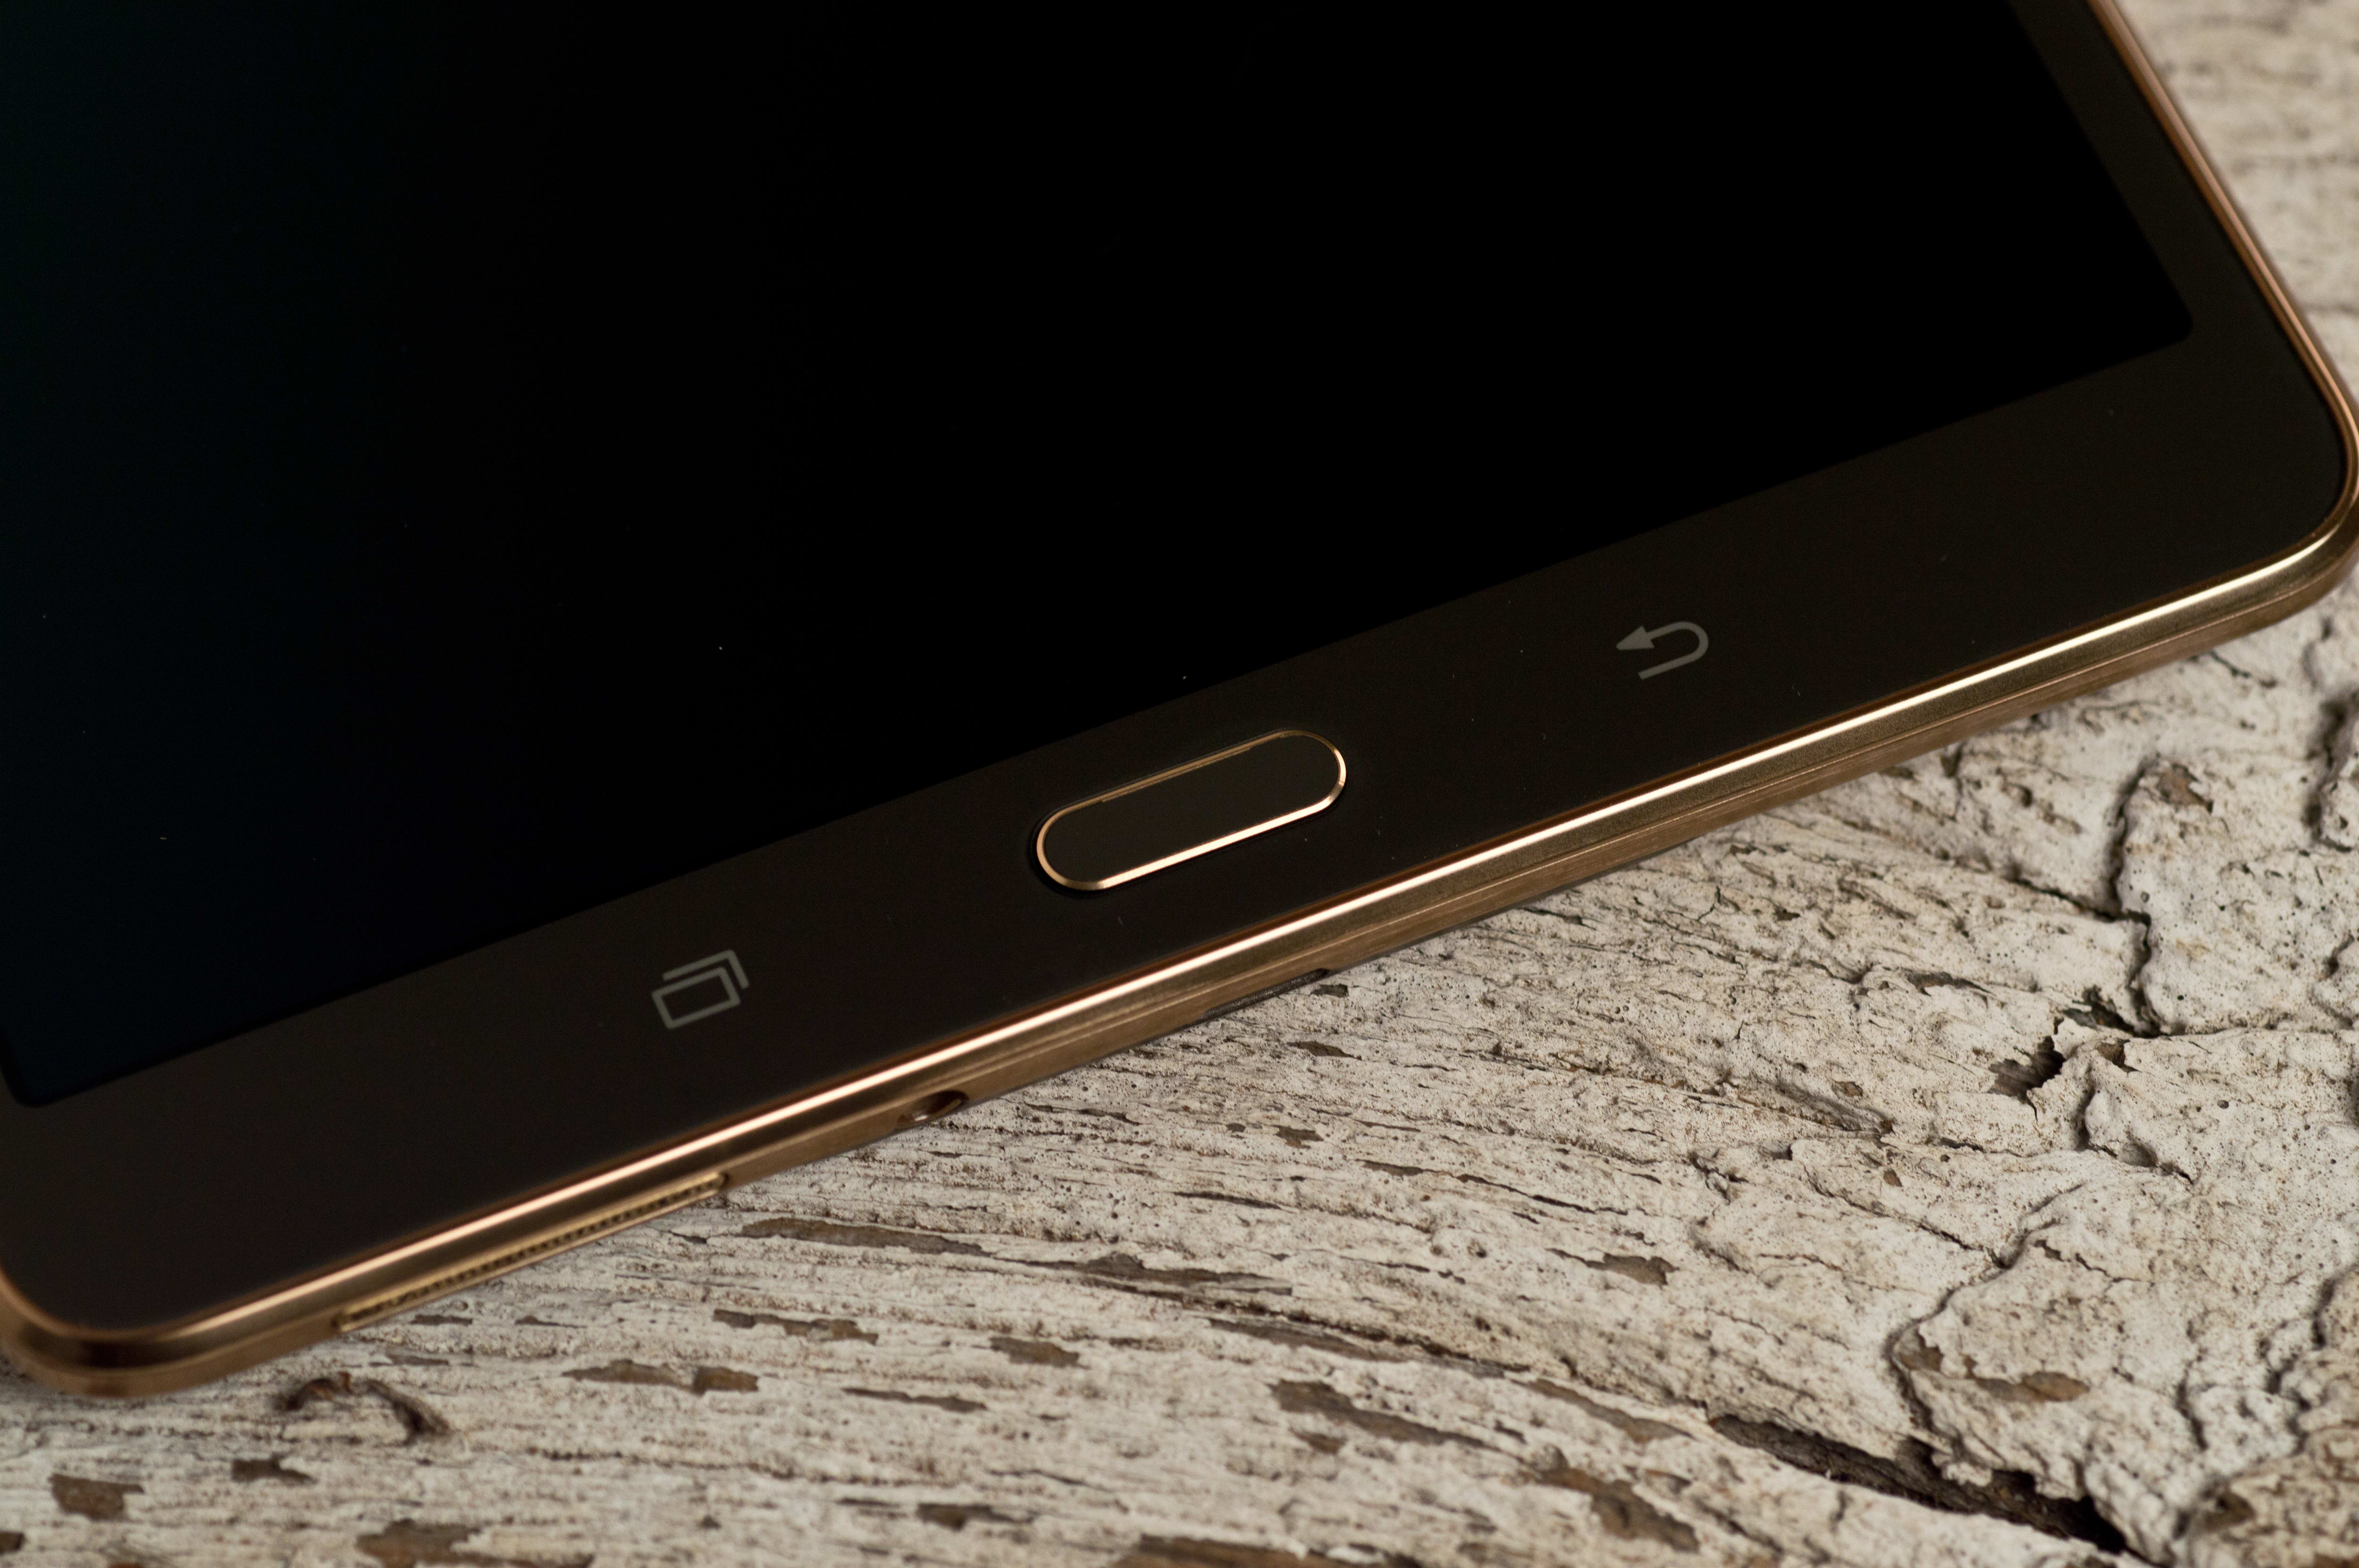 A photograph of the Samsung Galaxy Tab S 8.4's home button.